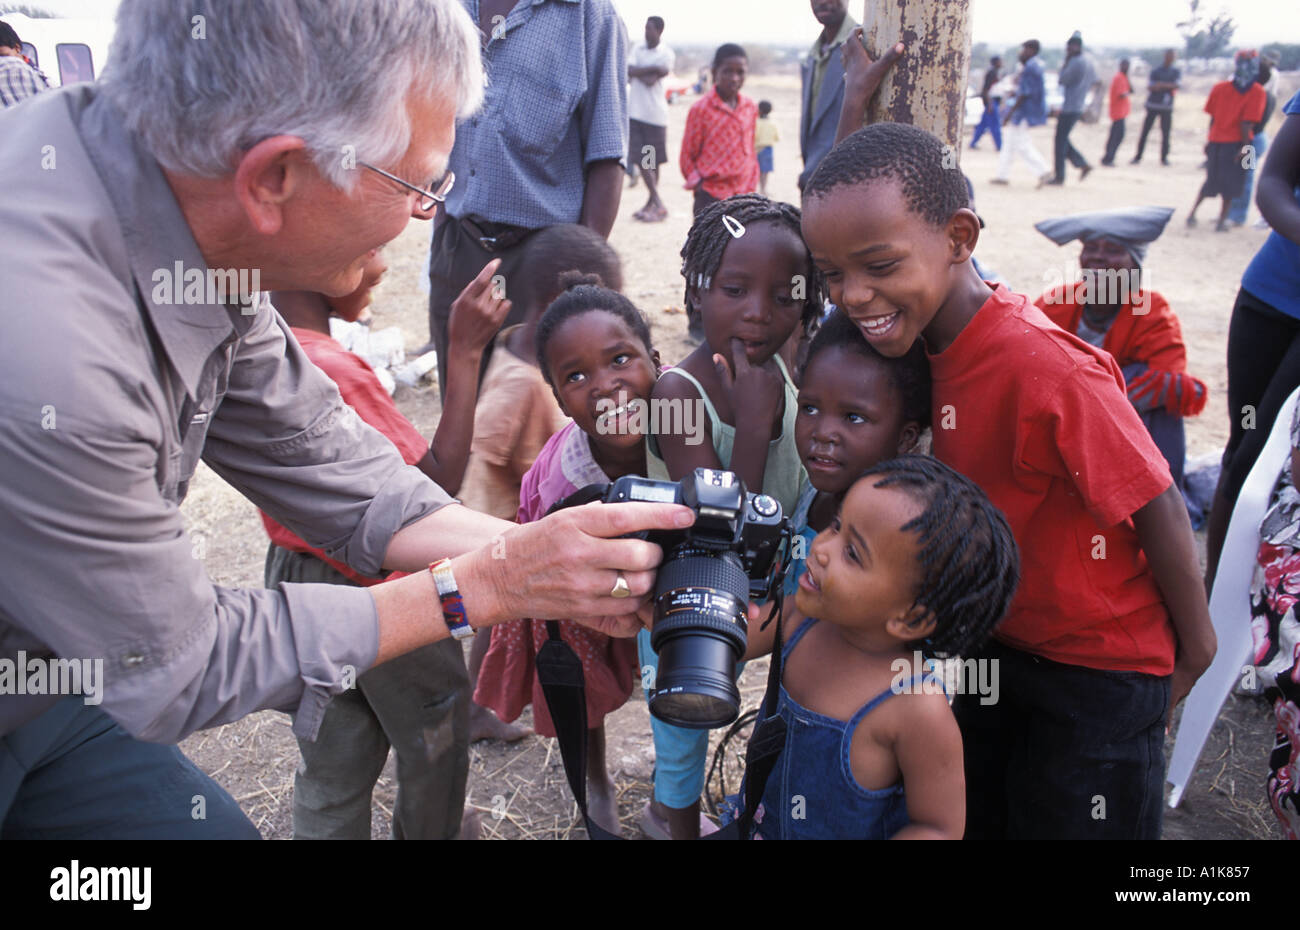 Young Herero children review their photographs on a digital camera at the MaHerero Day festival Okahandja Namibia - Stock Image